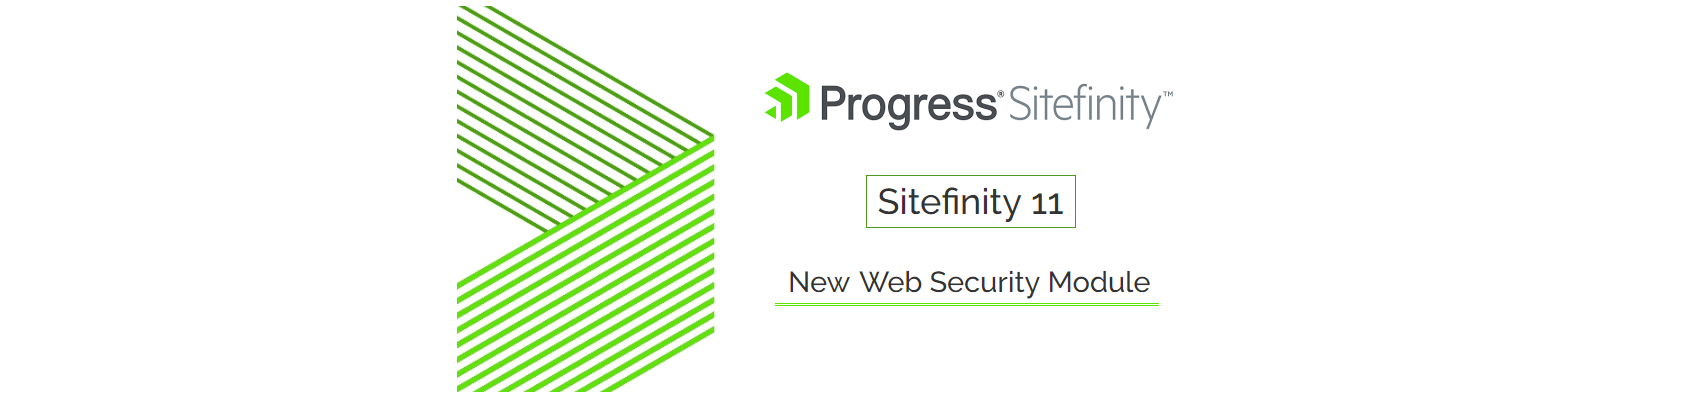 Sitefinity 11 Web Security Module